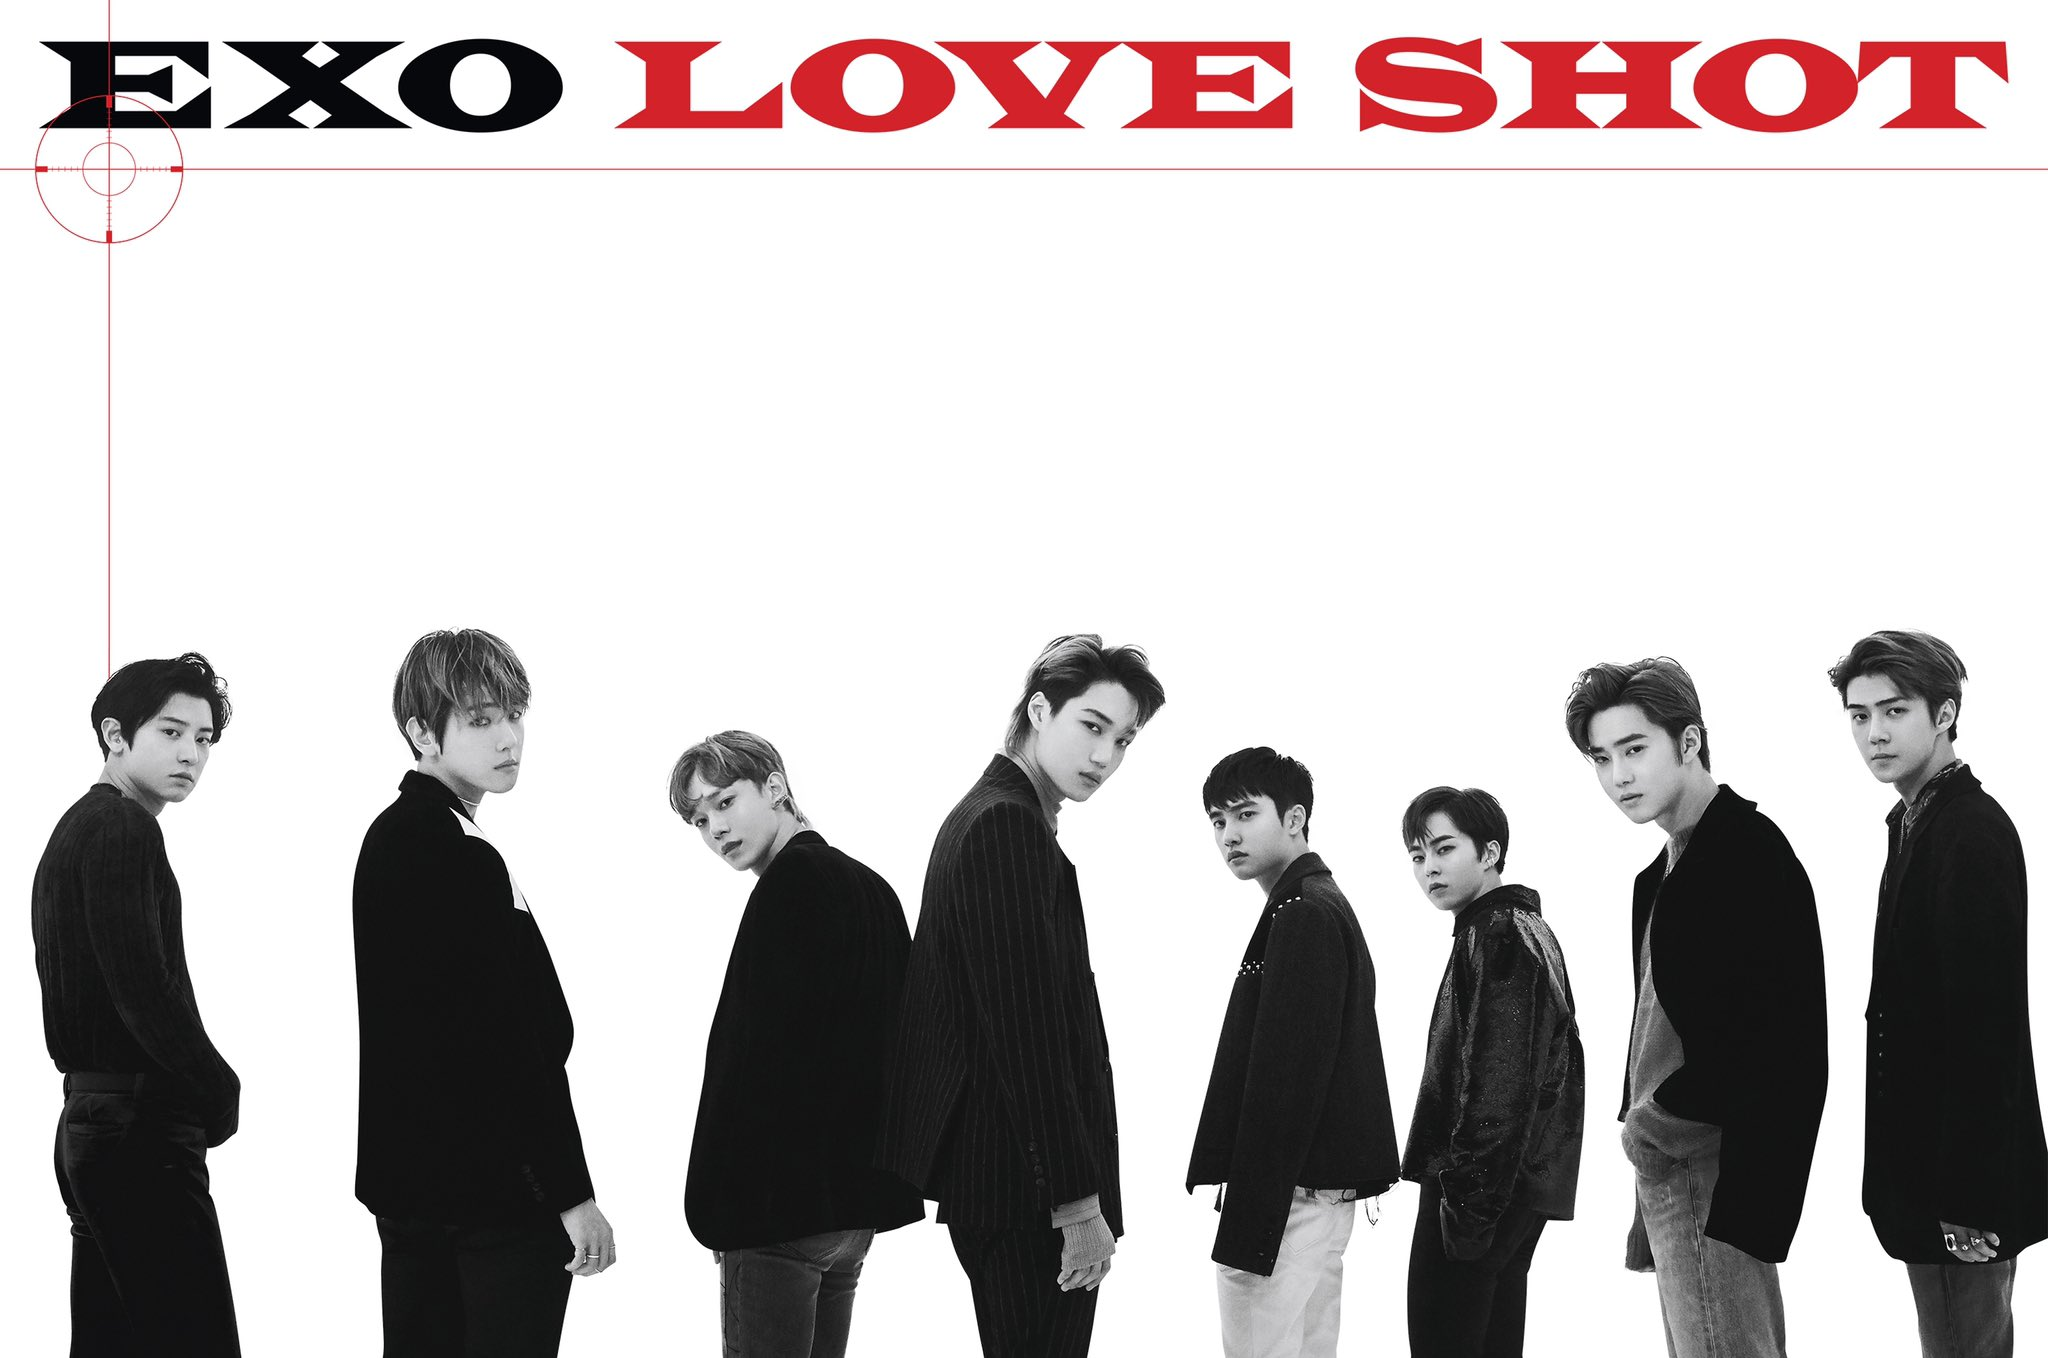 Exo Images Exo Love Shot Hd Wallpaper And Background Photos 41725233